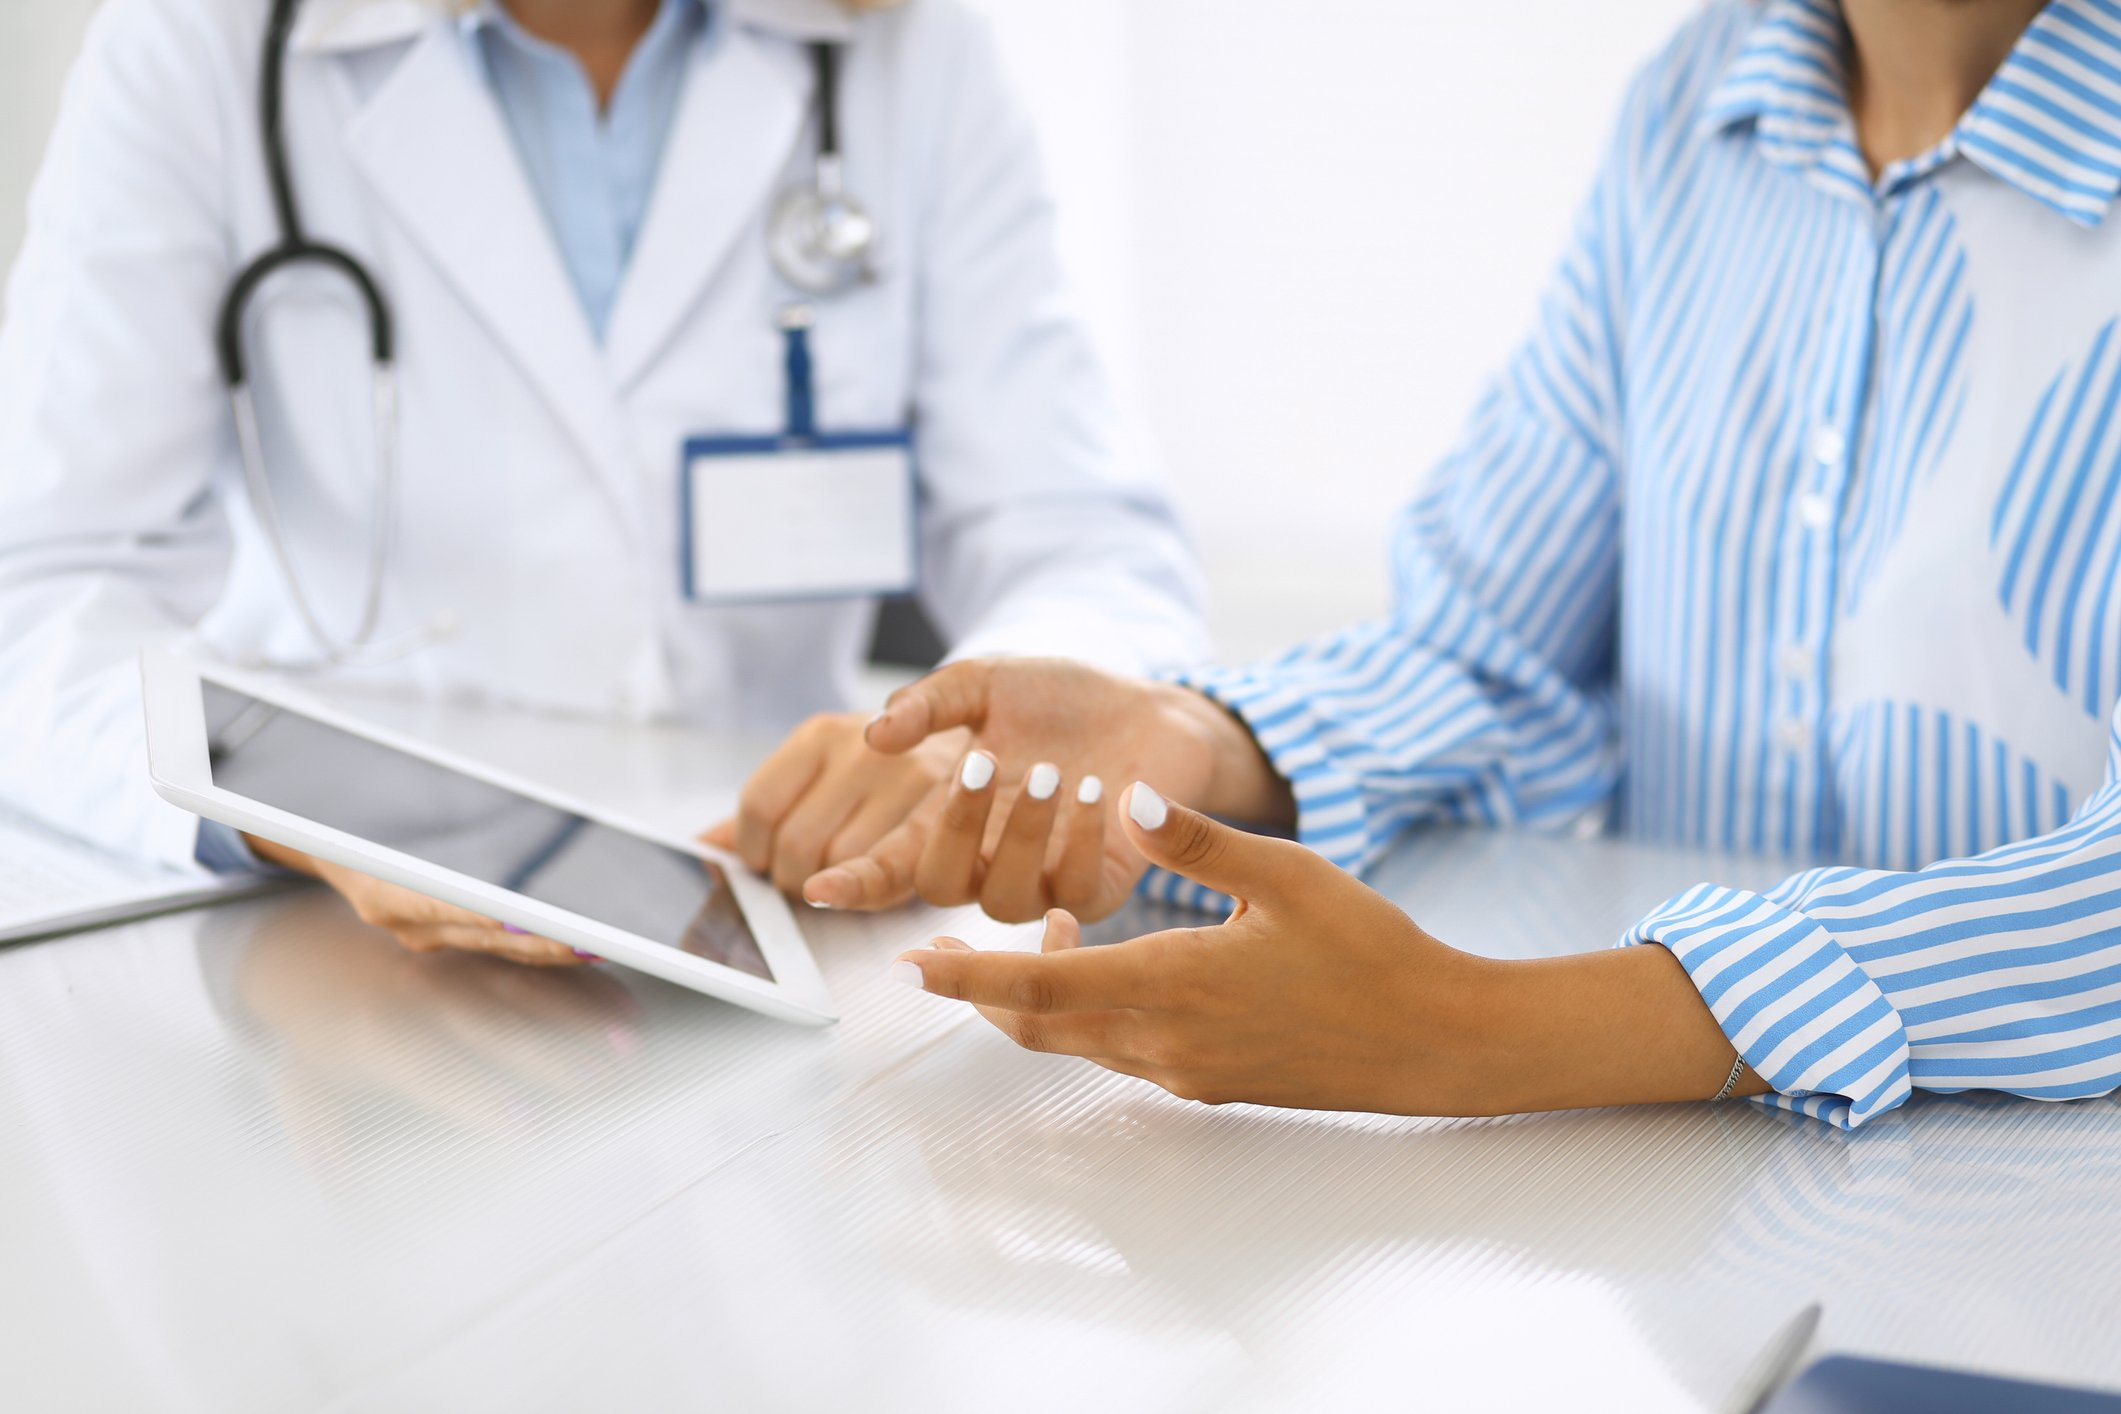 Prior Authorizations are becoming a bigger burden- Now what?